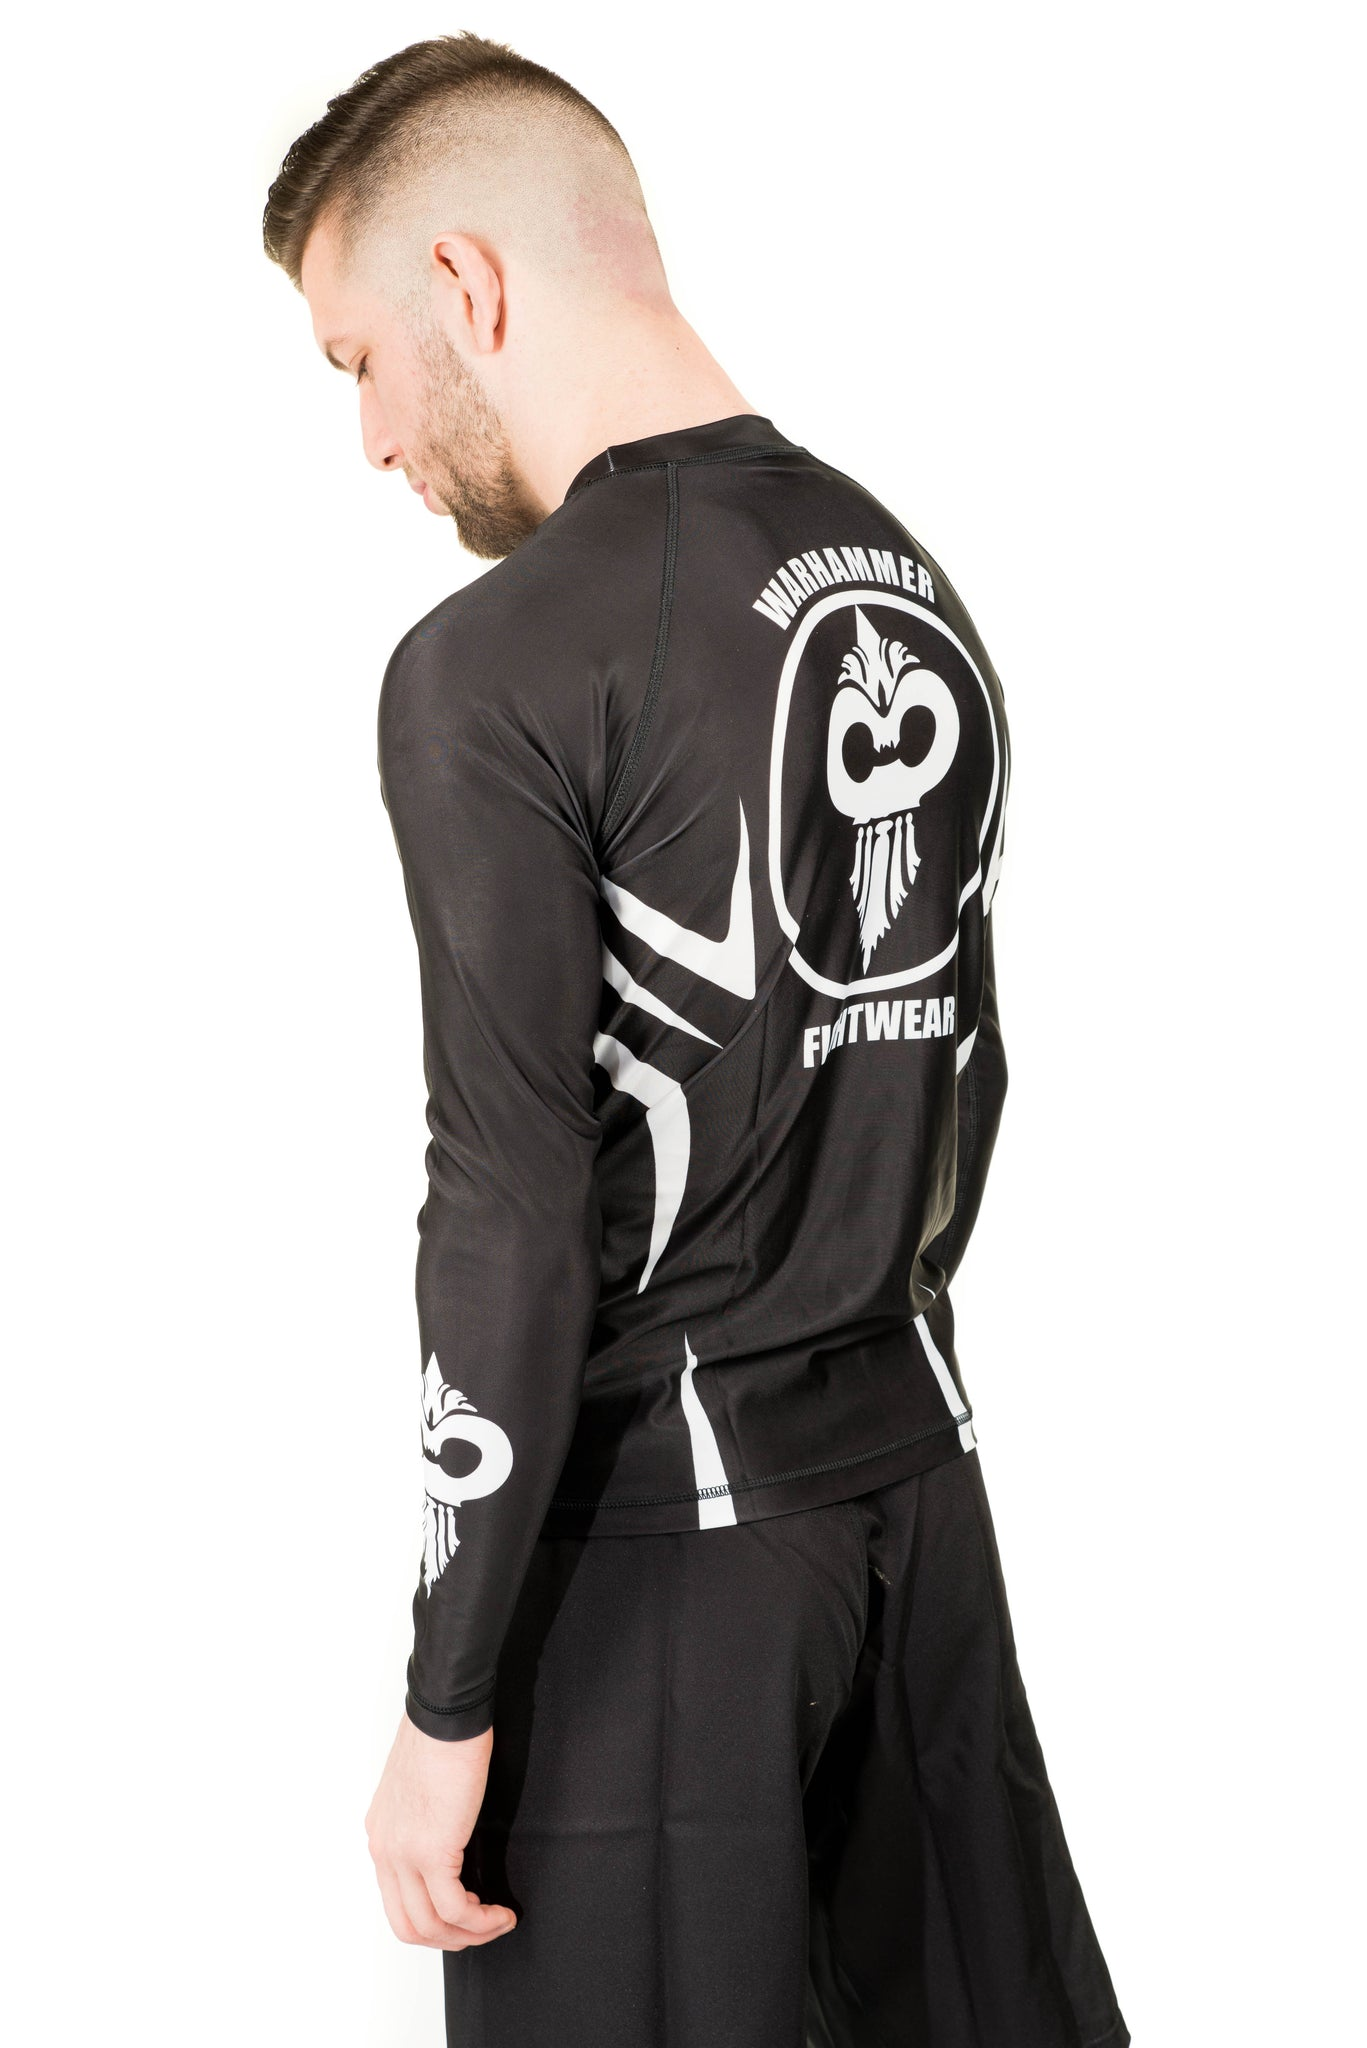 """Razor"" Series Rash Guard White on Black (Adult Sizes Unisex) - Warhammer Fightwear"